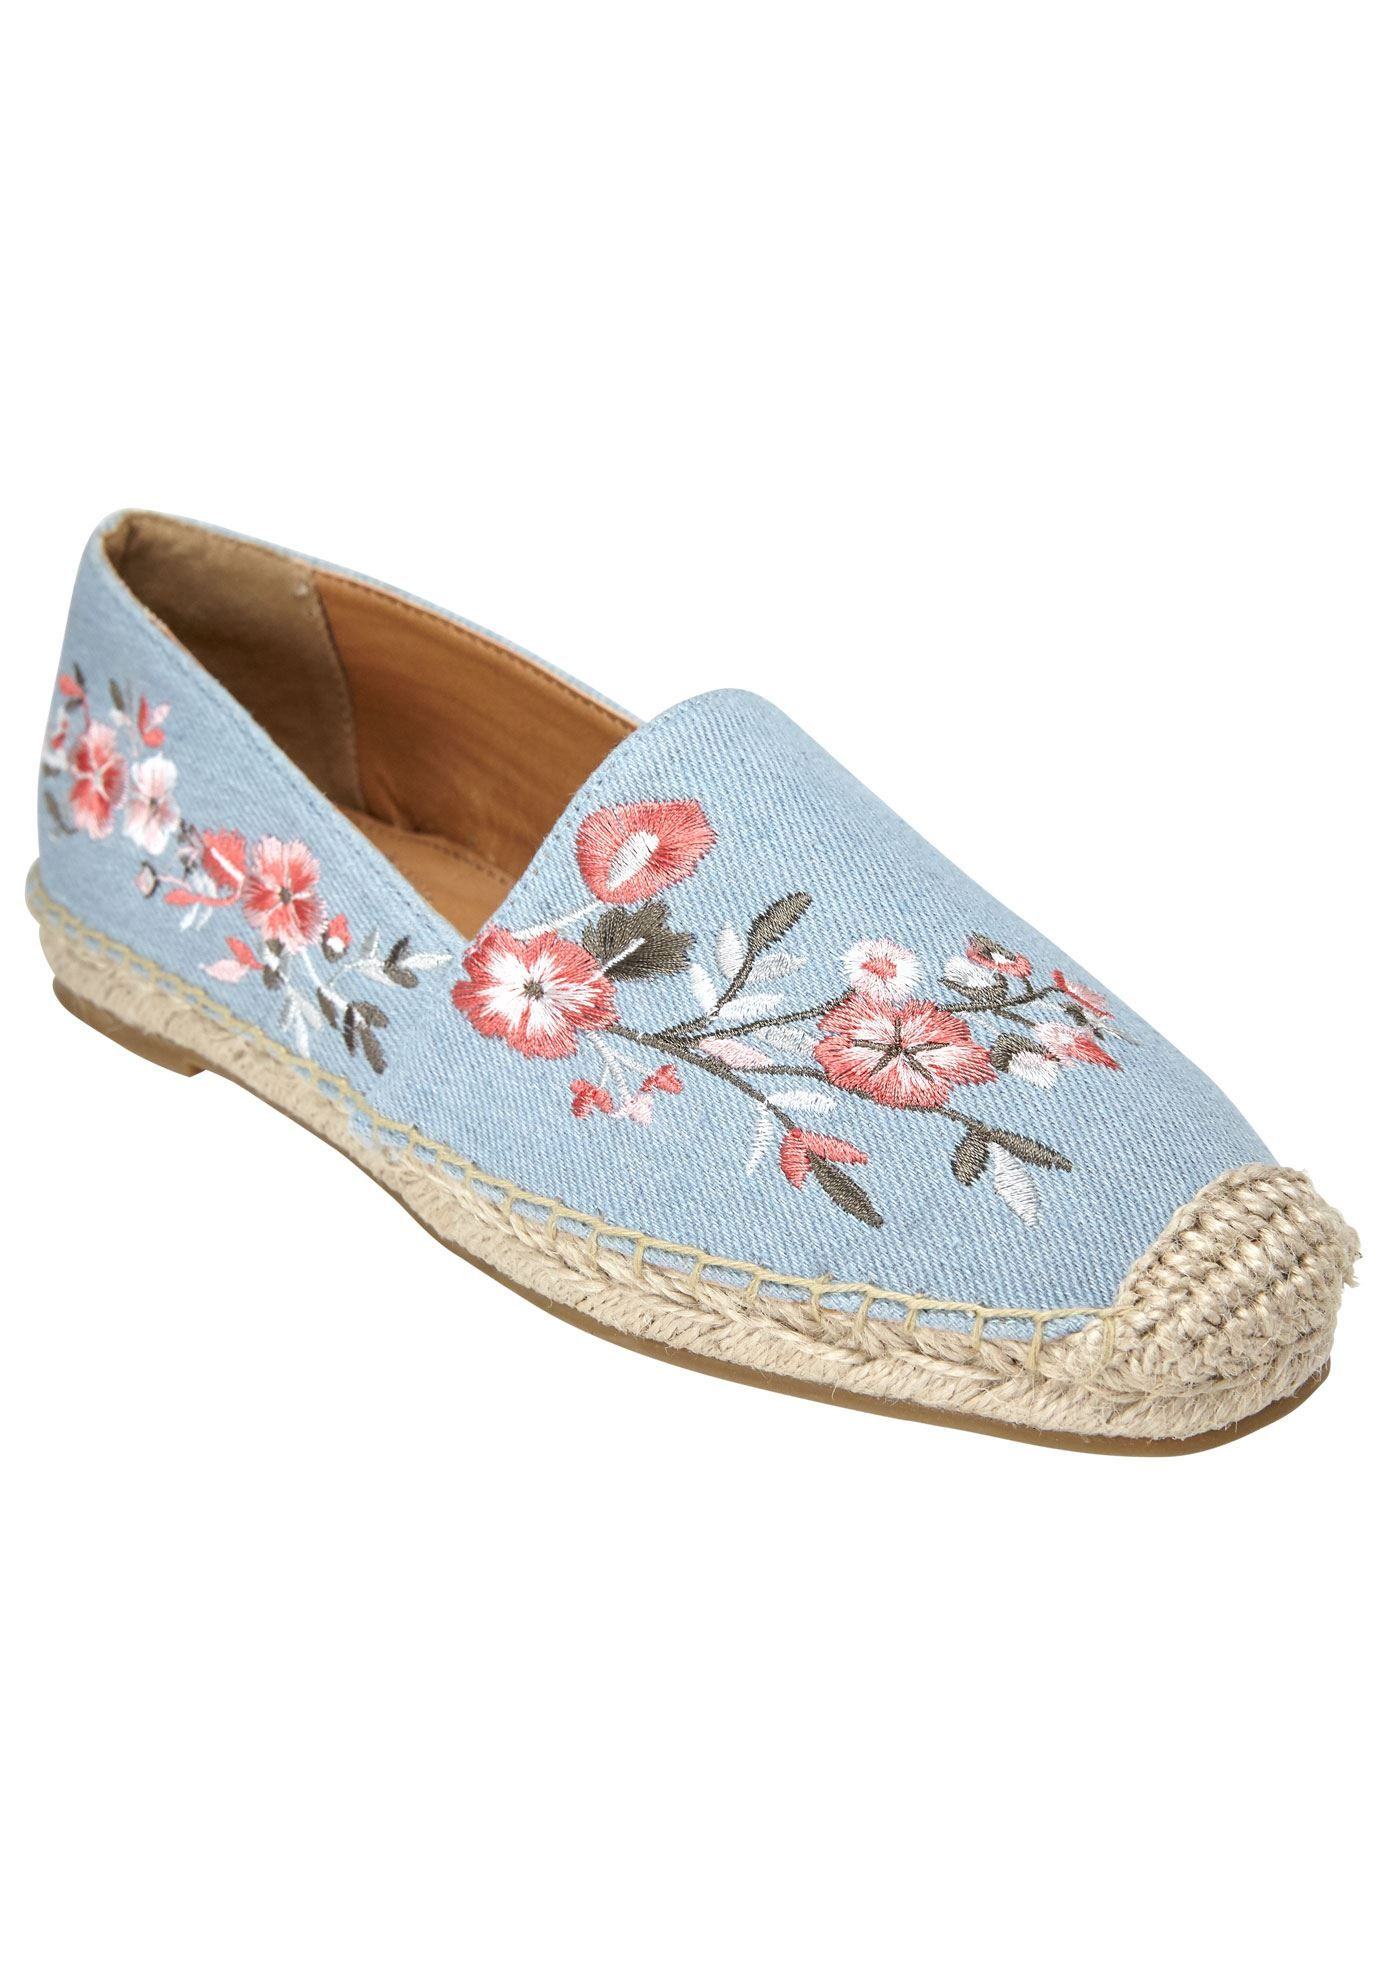 a7738e4f3c4 Amrisa Flats by Comfortview - Women s Plus Size Clothing